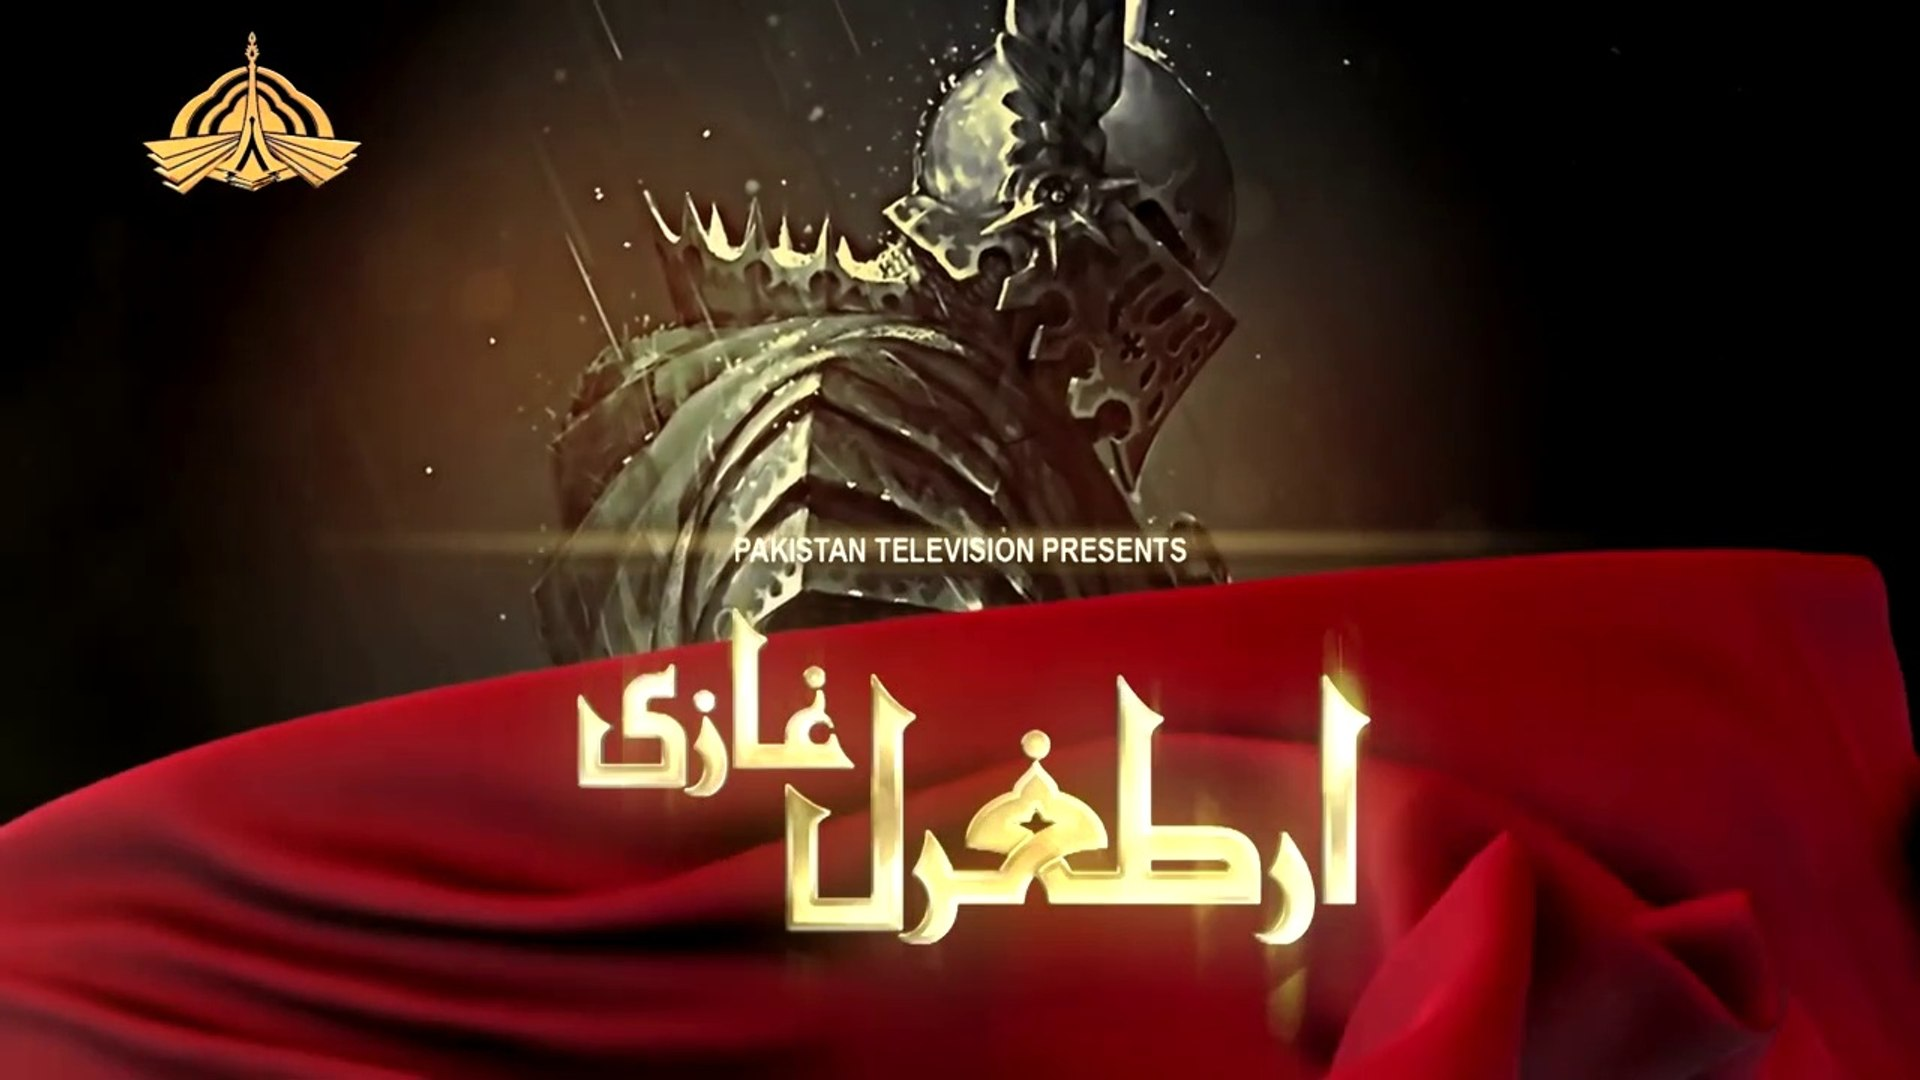 Dirilis Ertugrul Season 1 Episode 3 Urdu Dubbed Turkish TV Drama Watch Online